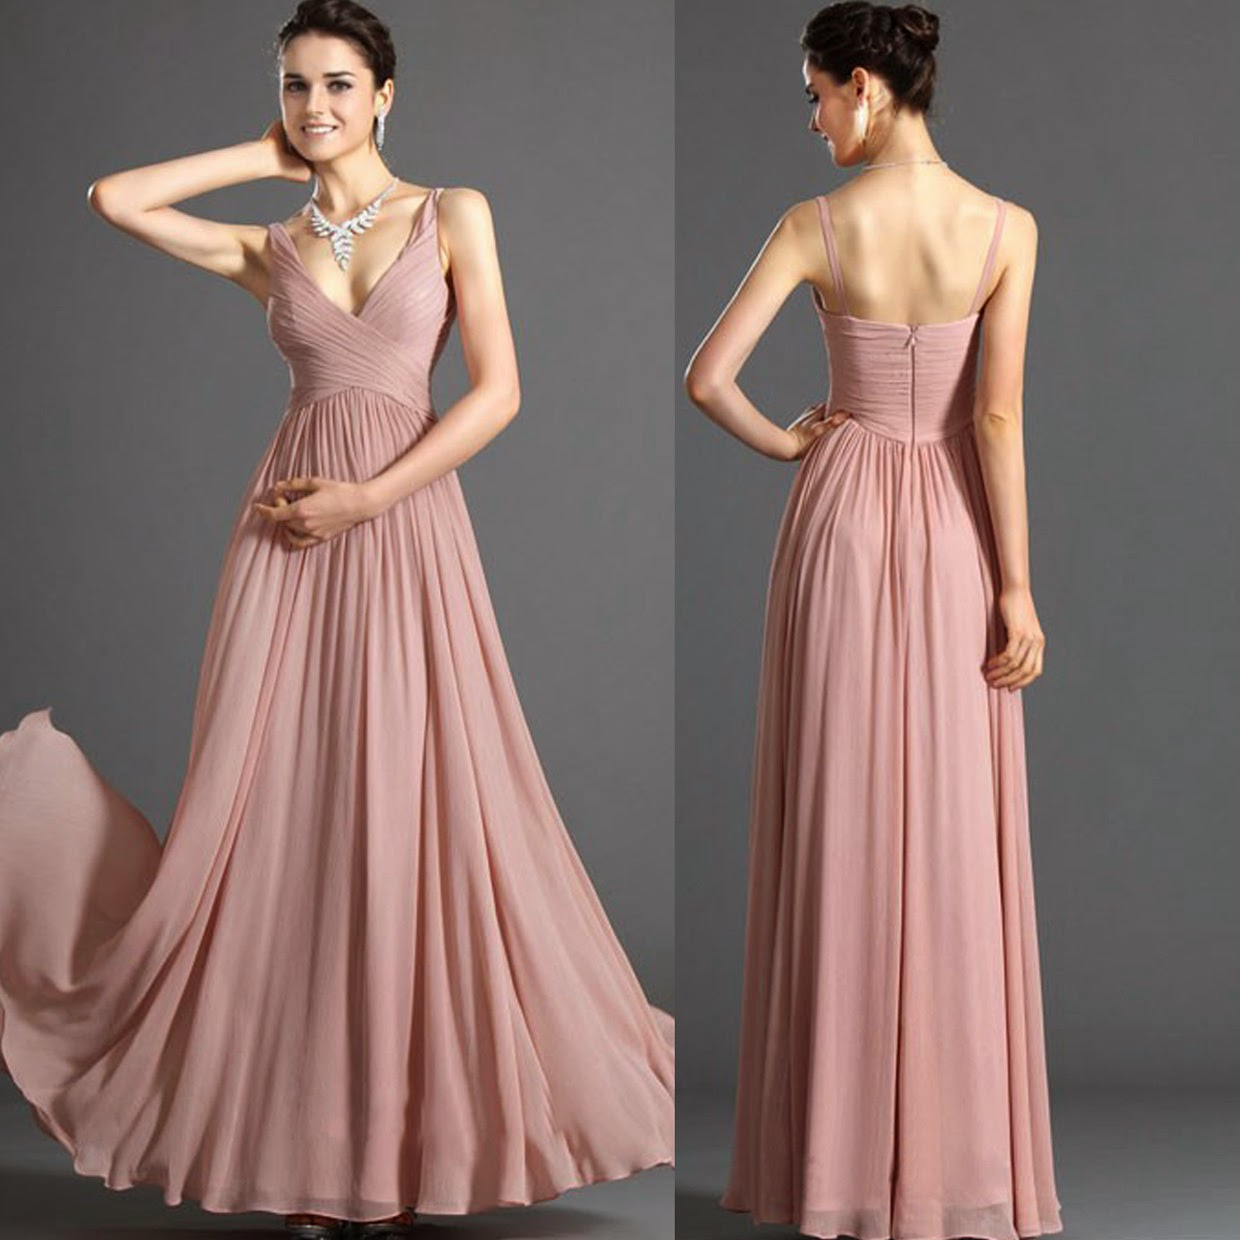 Modest Evening Dresses For Women - Cocktail Dresses 2016